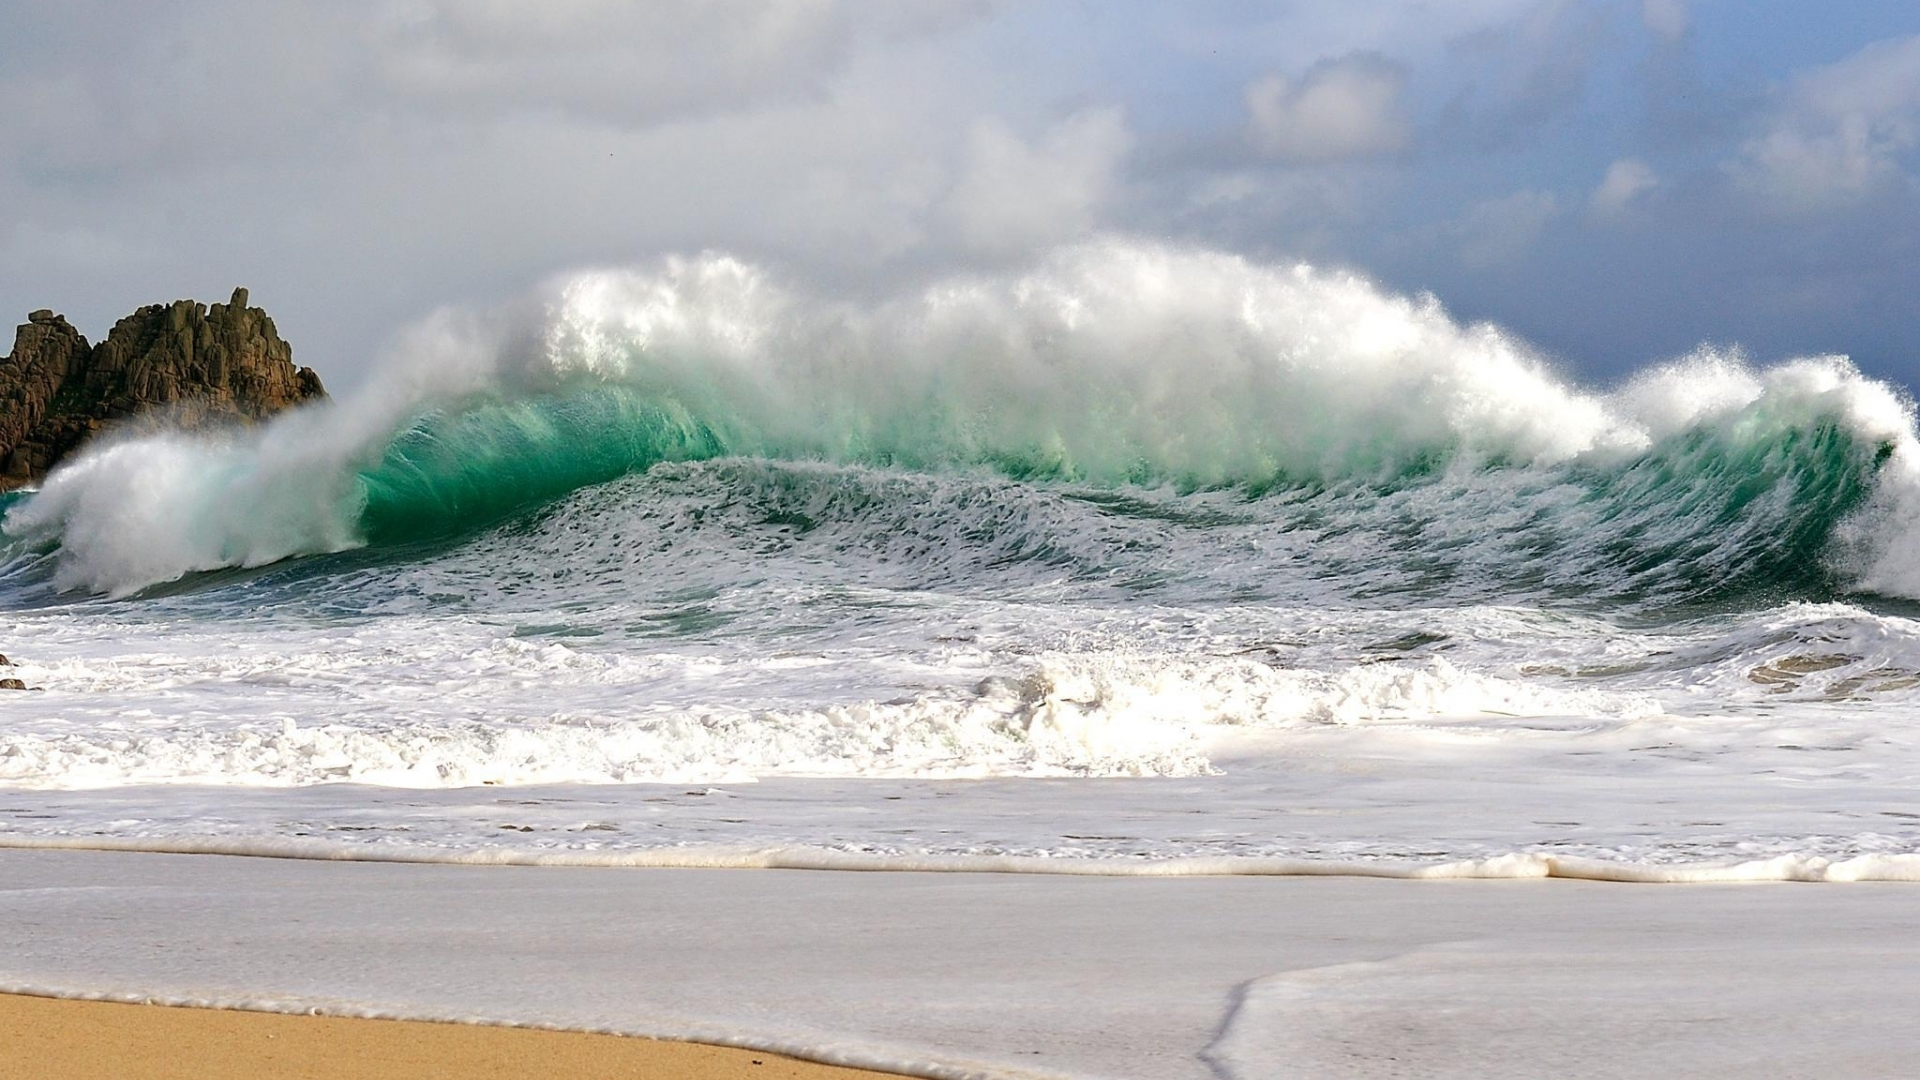 Awesome Cool Wave Wallpapers: Ocean Waves Crashing Wallpaper 1920x1080px